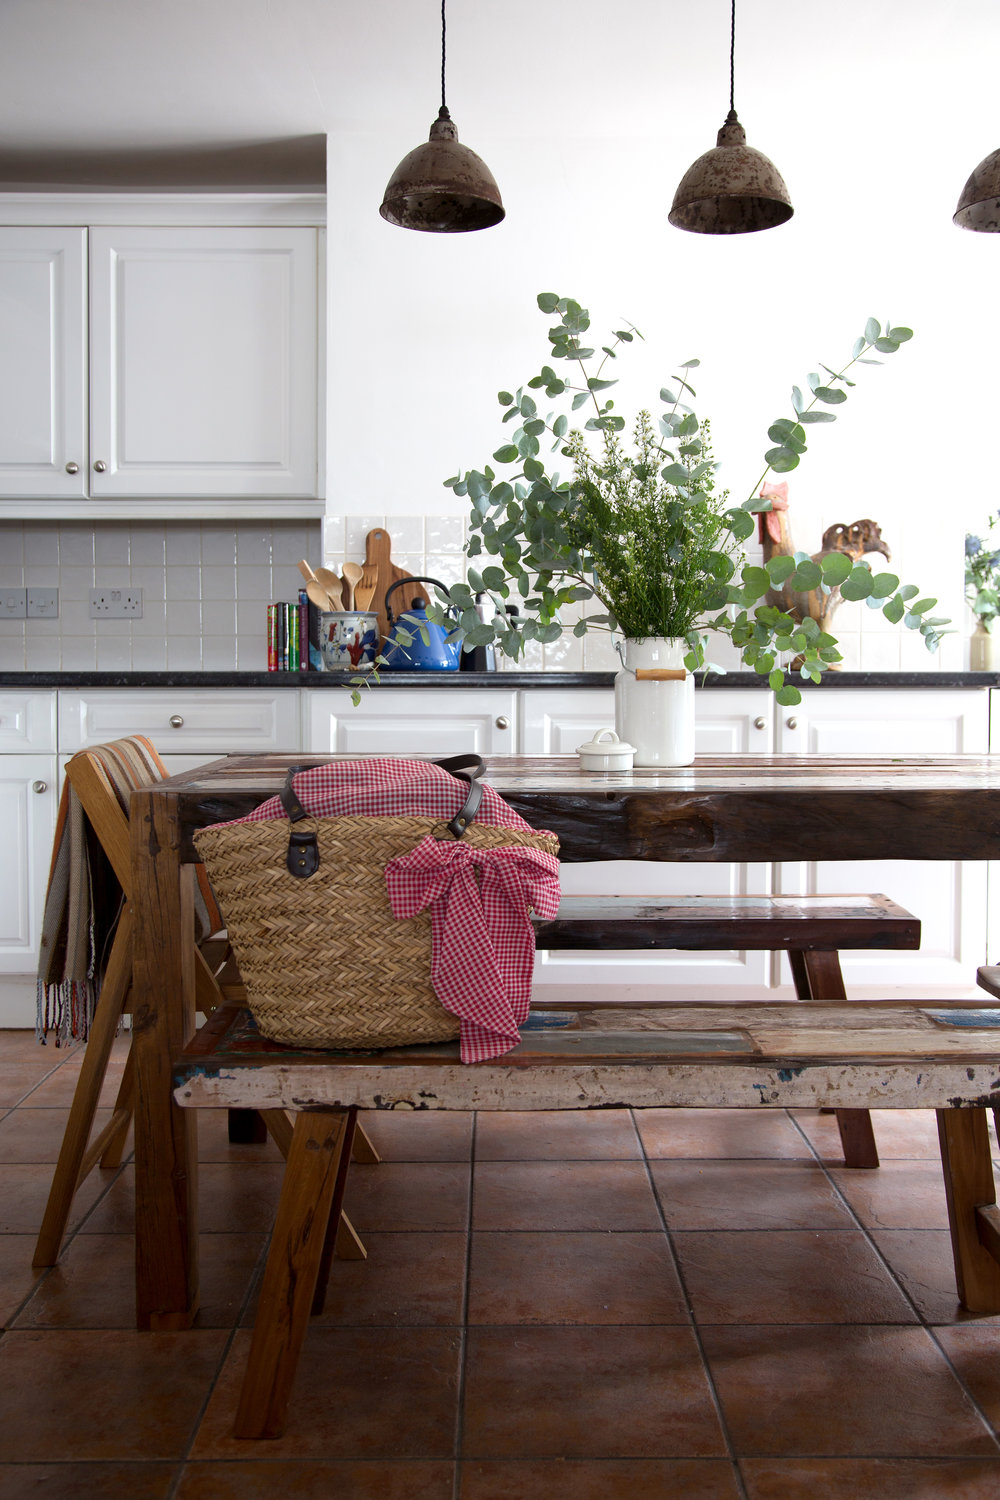 A Bright White Kitchen with a Rustic Wooden Table in a Grade II Listed Holiday Home in Battle East Sussex – Interior Design by Smartstyle Interiors